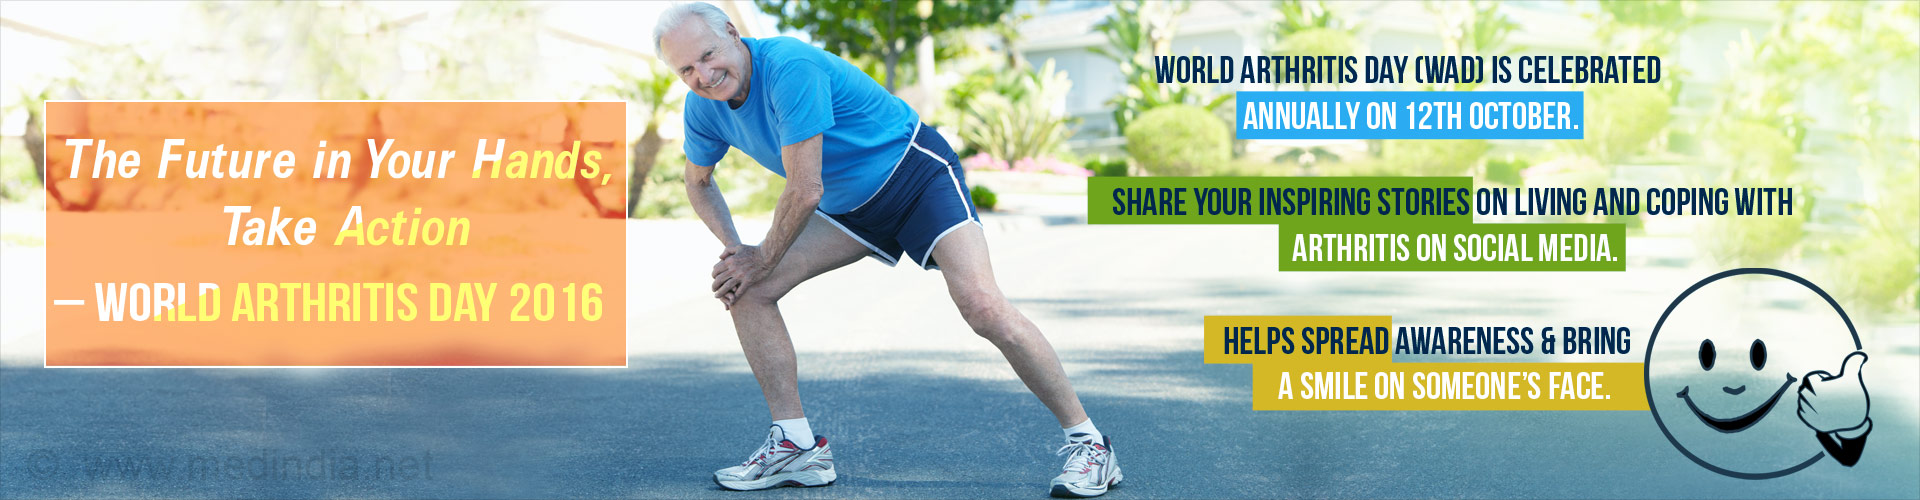 World Arthritis Day 2016 - �The Future in Your Hands, Take Action�